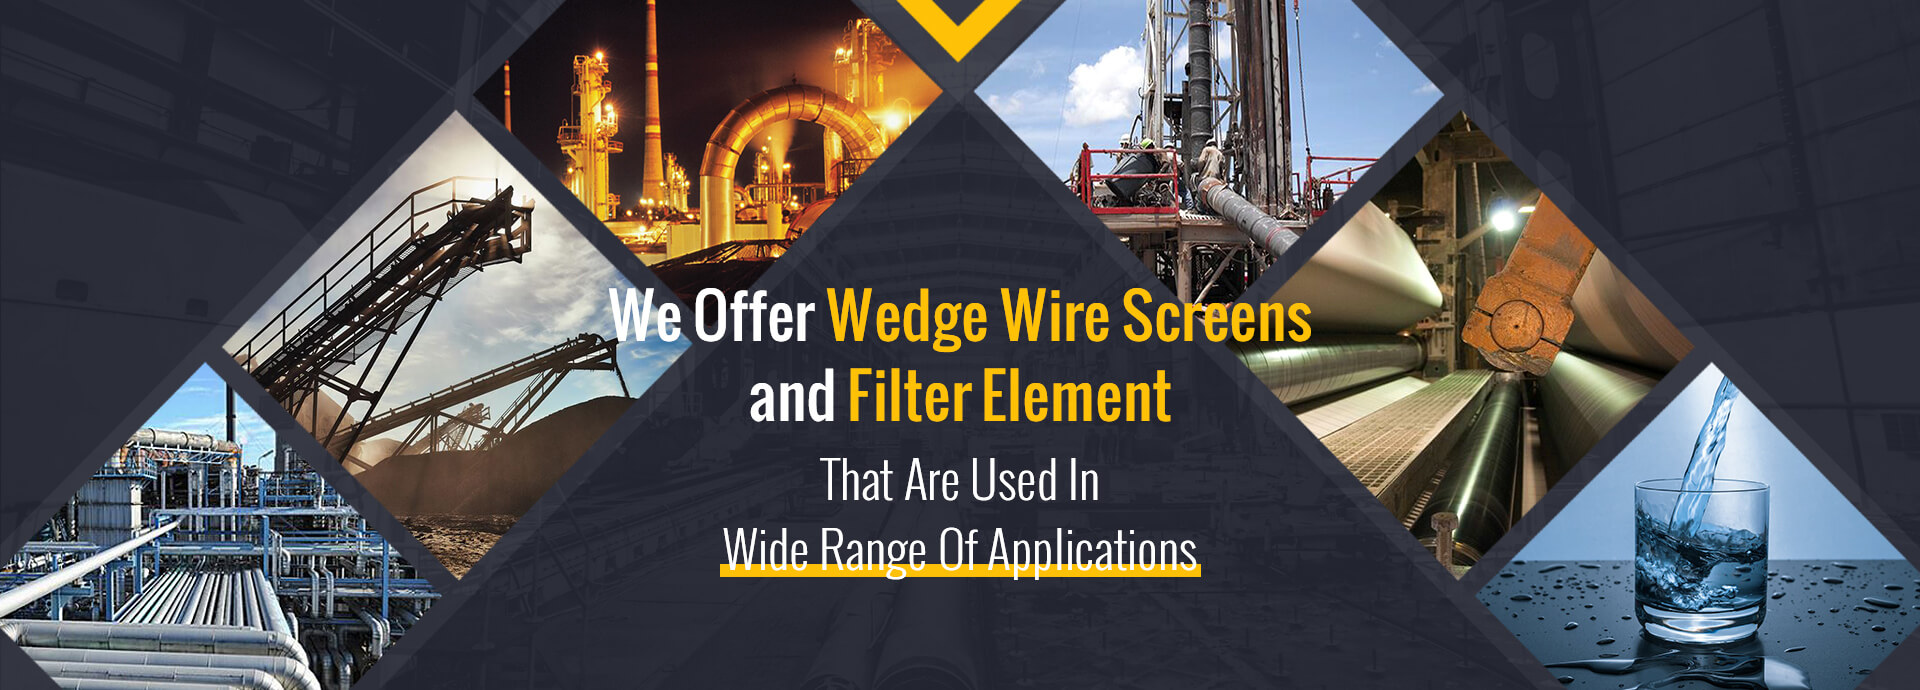 application of our wedge wire and filter product